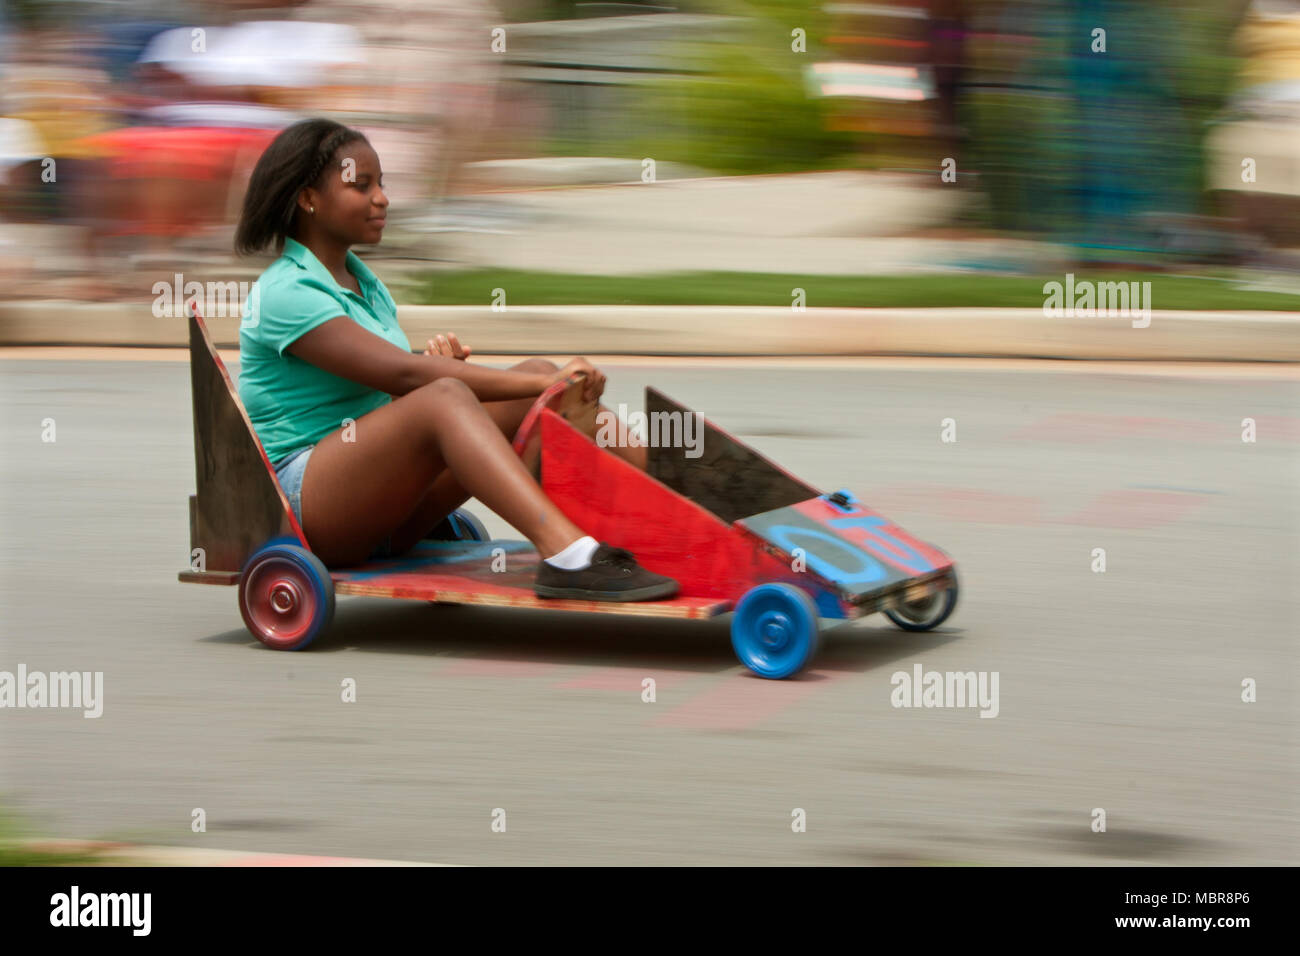 Motion blur of a teen girl steering a homemade car down a hilly street in the Cool Dads Rock Soap Box Derby on August 3, 2013 in Atlanta, GA. - Stock Image